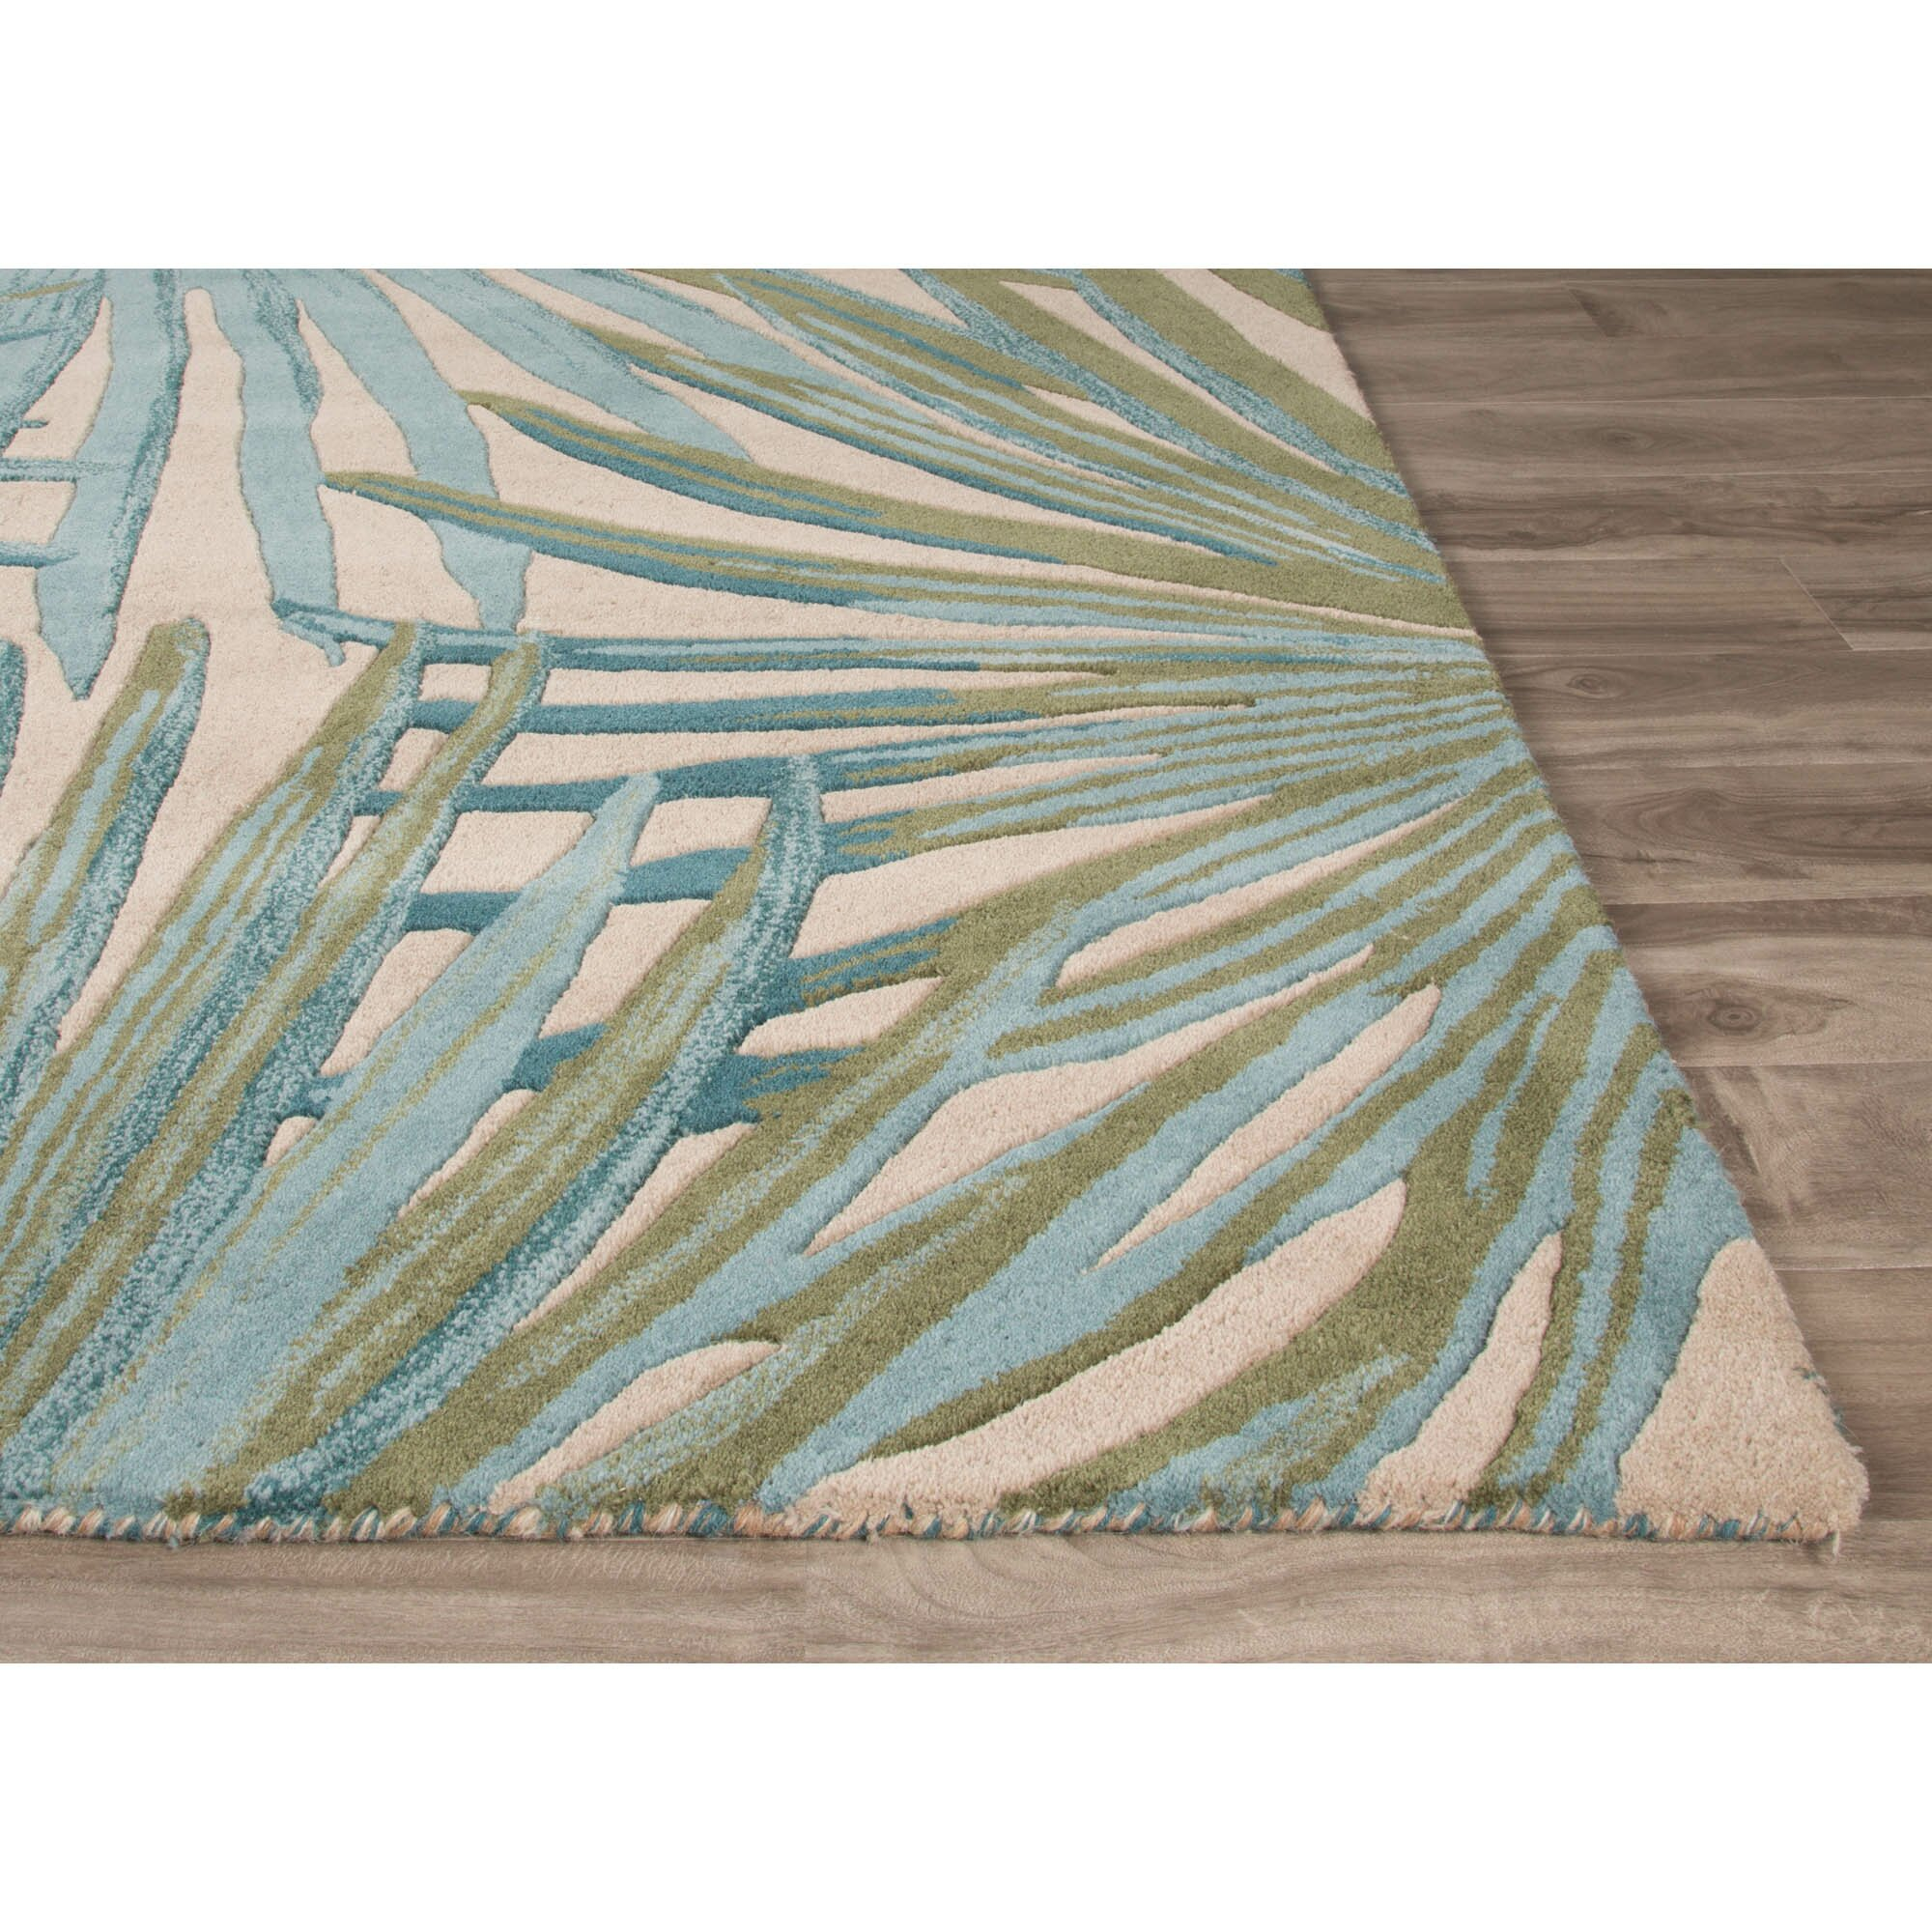 Jaipurliving Coastal Seaside Hand Tufted Blue Green Area